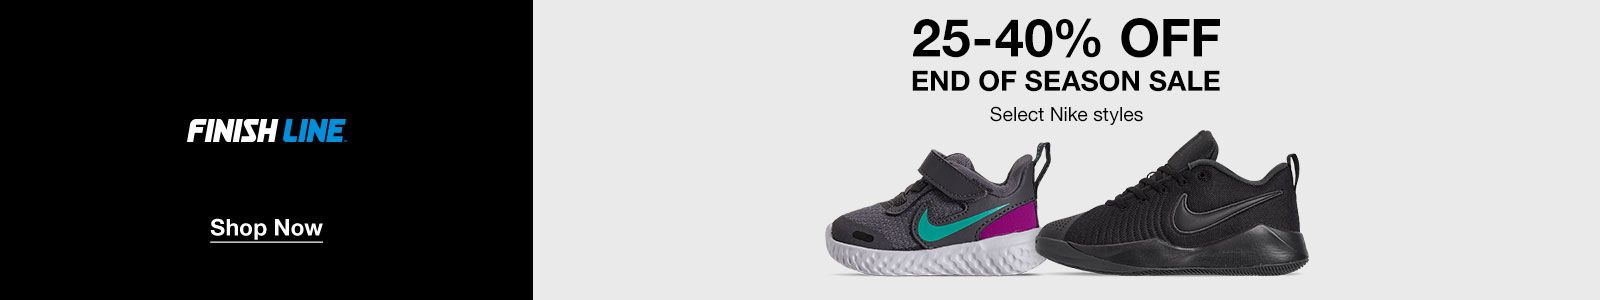 Finish Line, Shop Now, 25-40% off, End of Season Sale, Select Nike styles